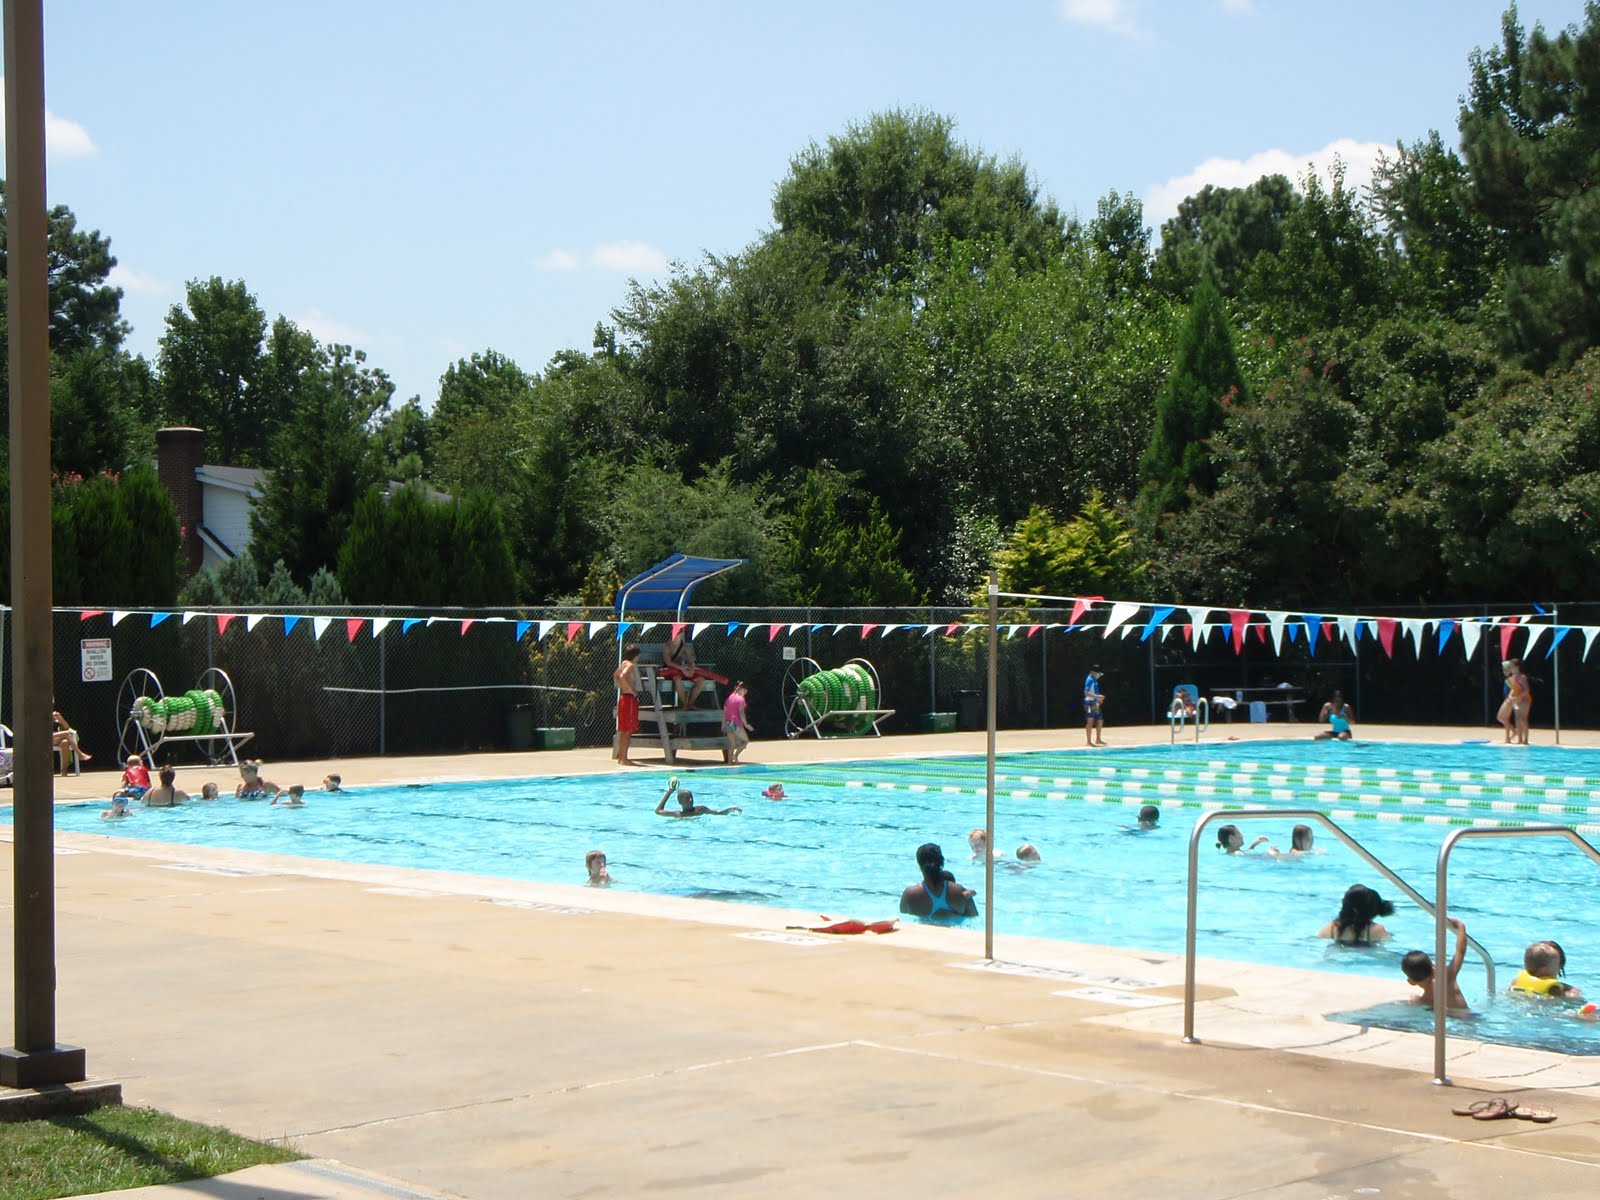 Lake Johnson Pool And Sprayground A Guide For Parents In The Triangle Region Of Nc Mom In